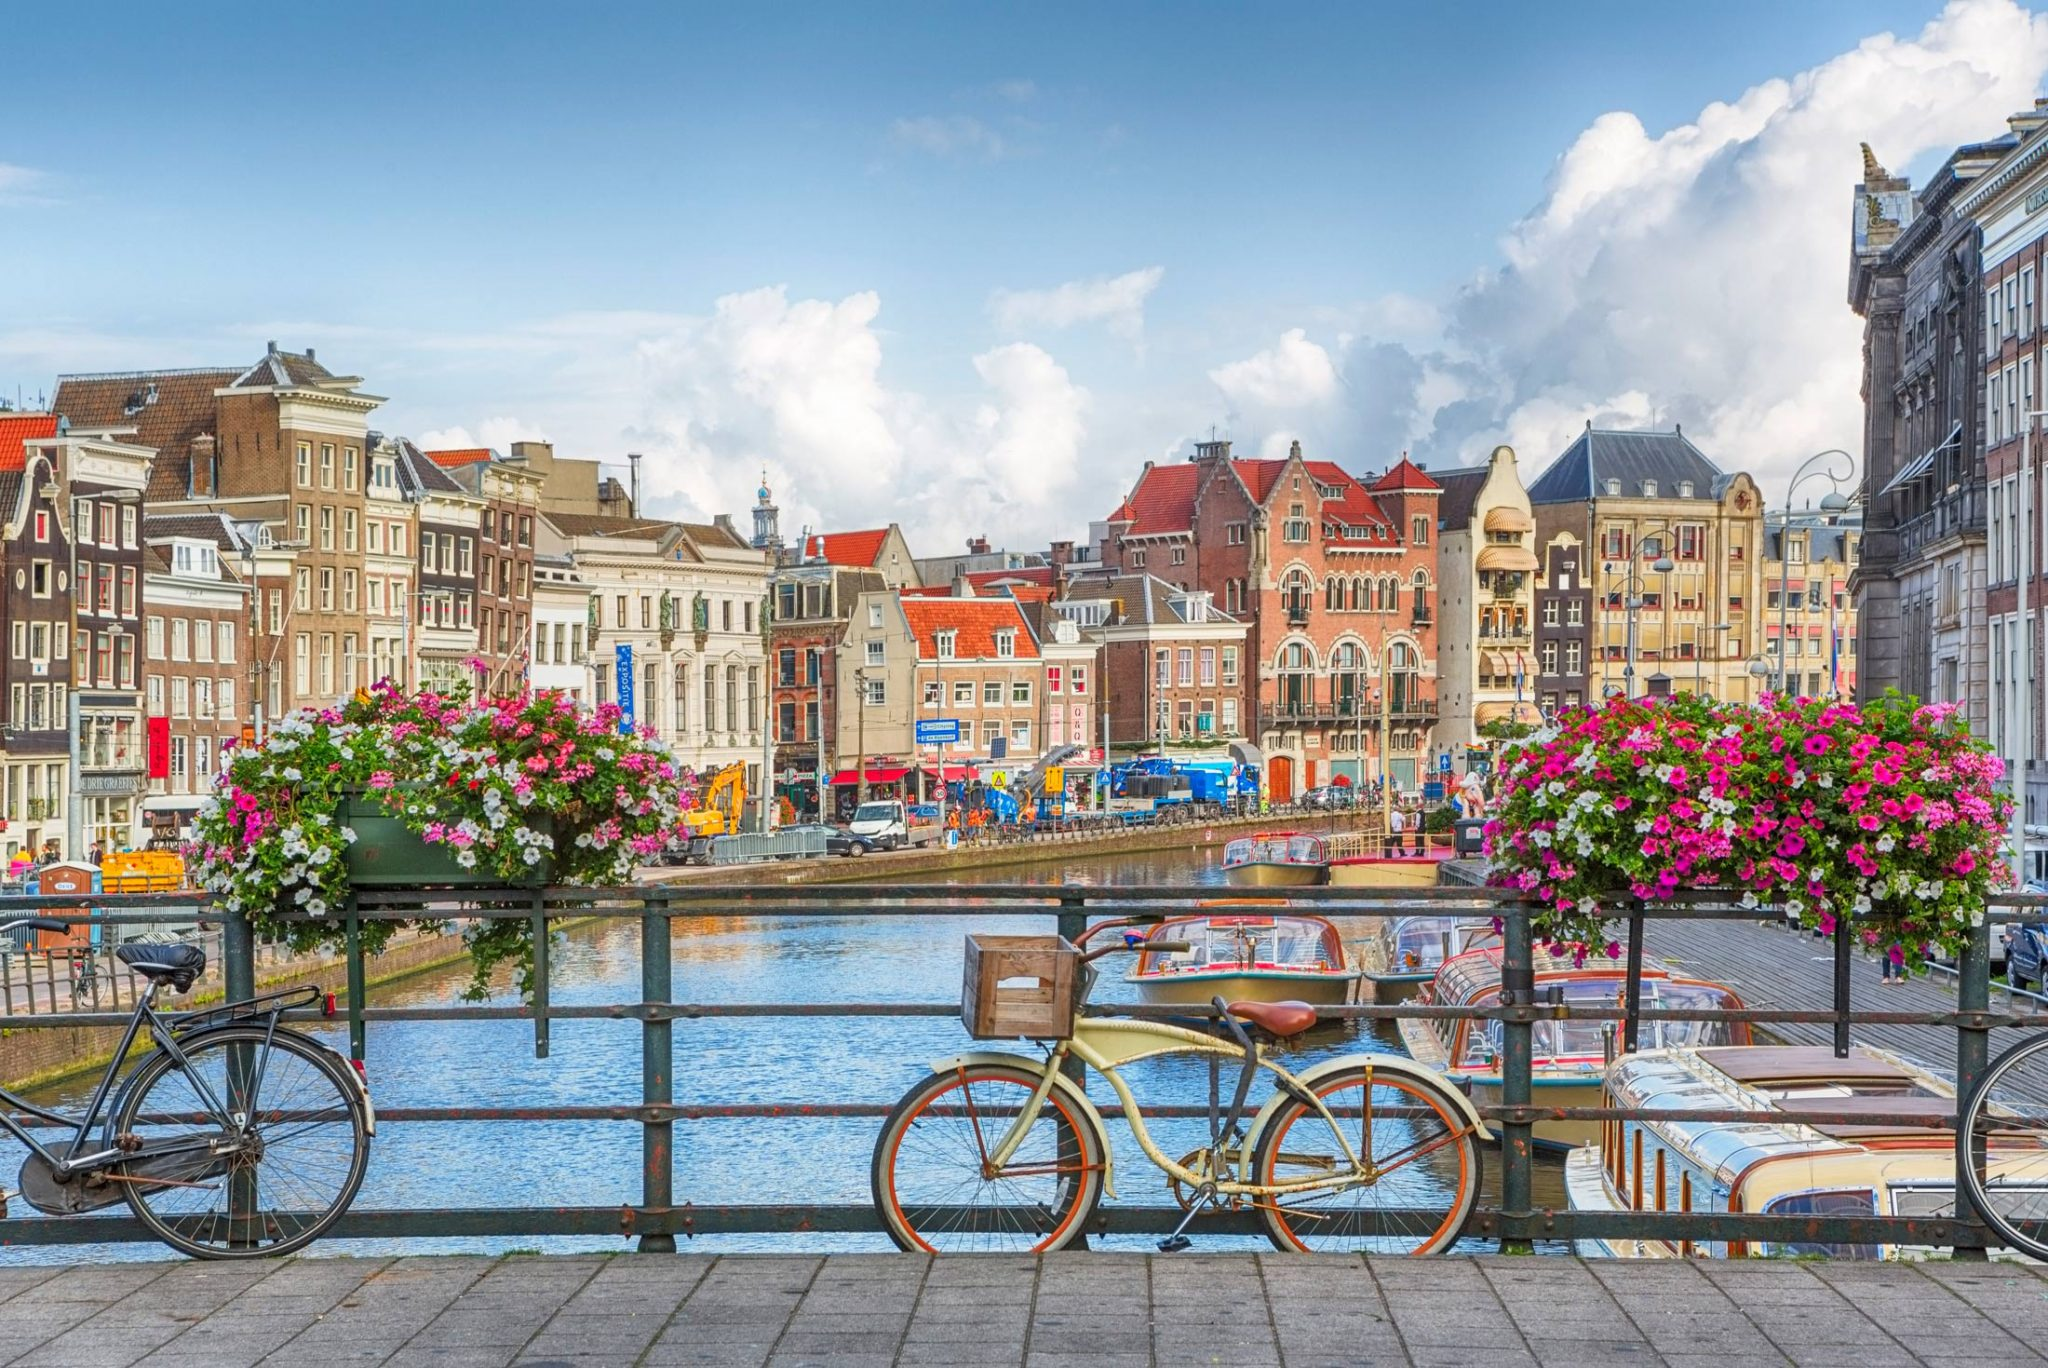 Top 3 orase din Europa in care sa te aventurezi pe bicicleta: Amsterdam. Sursa foto: st-christophers.co.uk